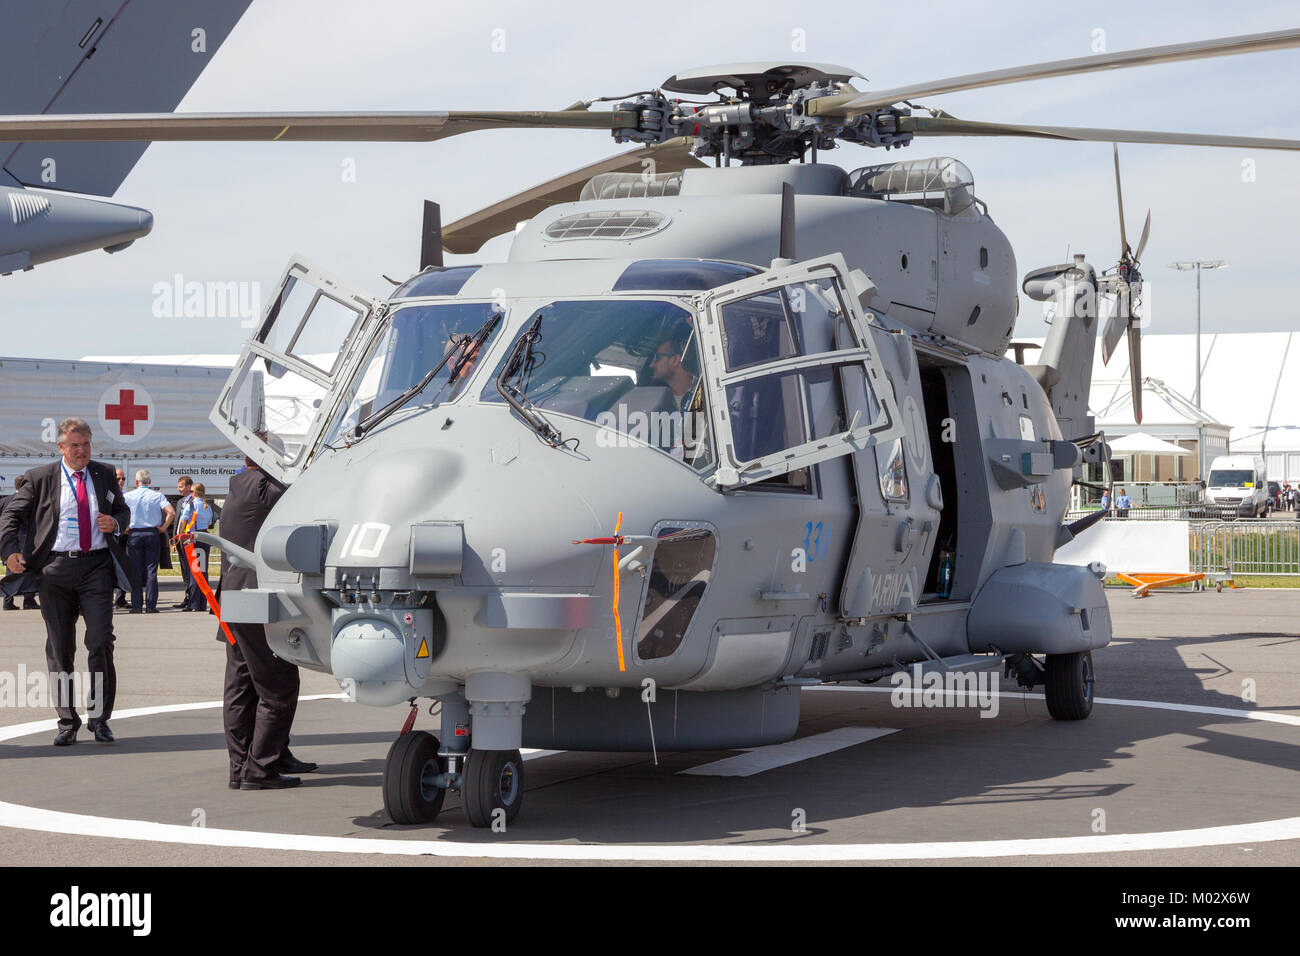 174th ahc 2015 reunion - Berlin Germany May 22 2014 Italian Navy Nh90 Helicopter On Dispay At